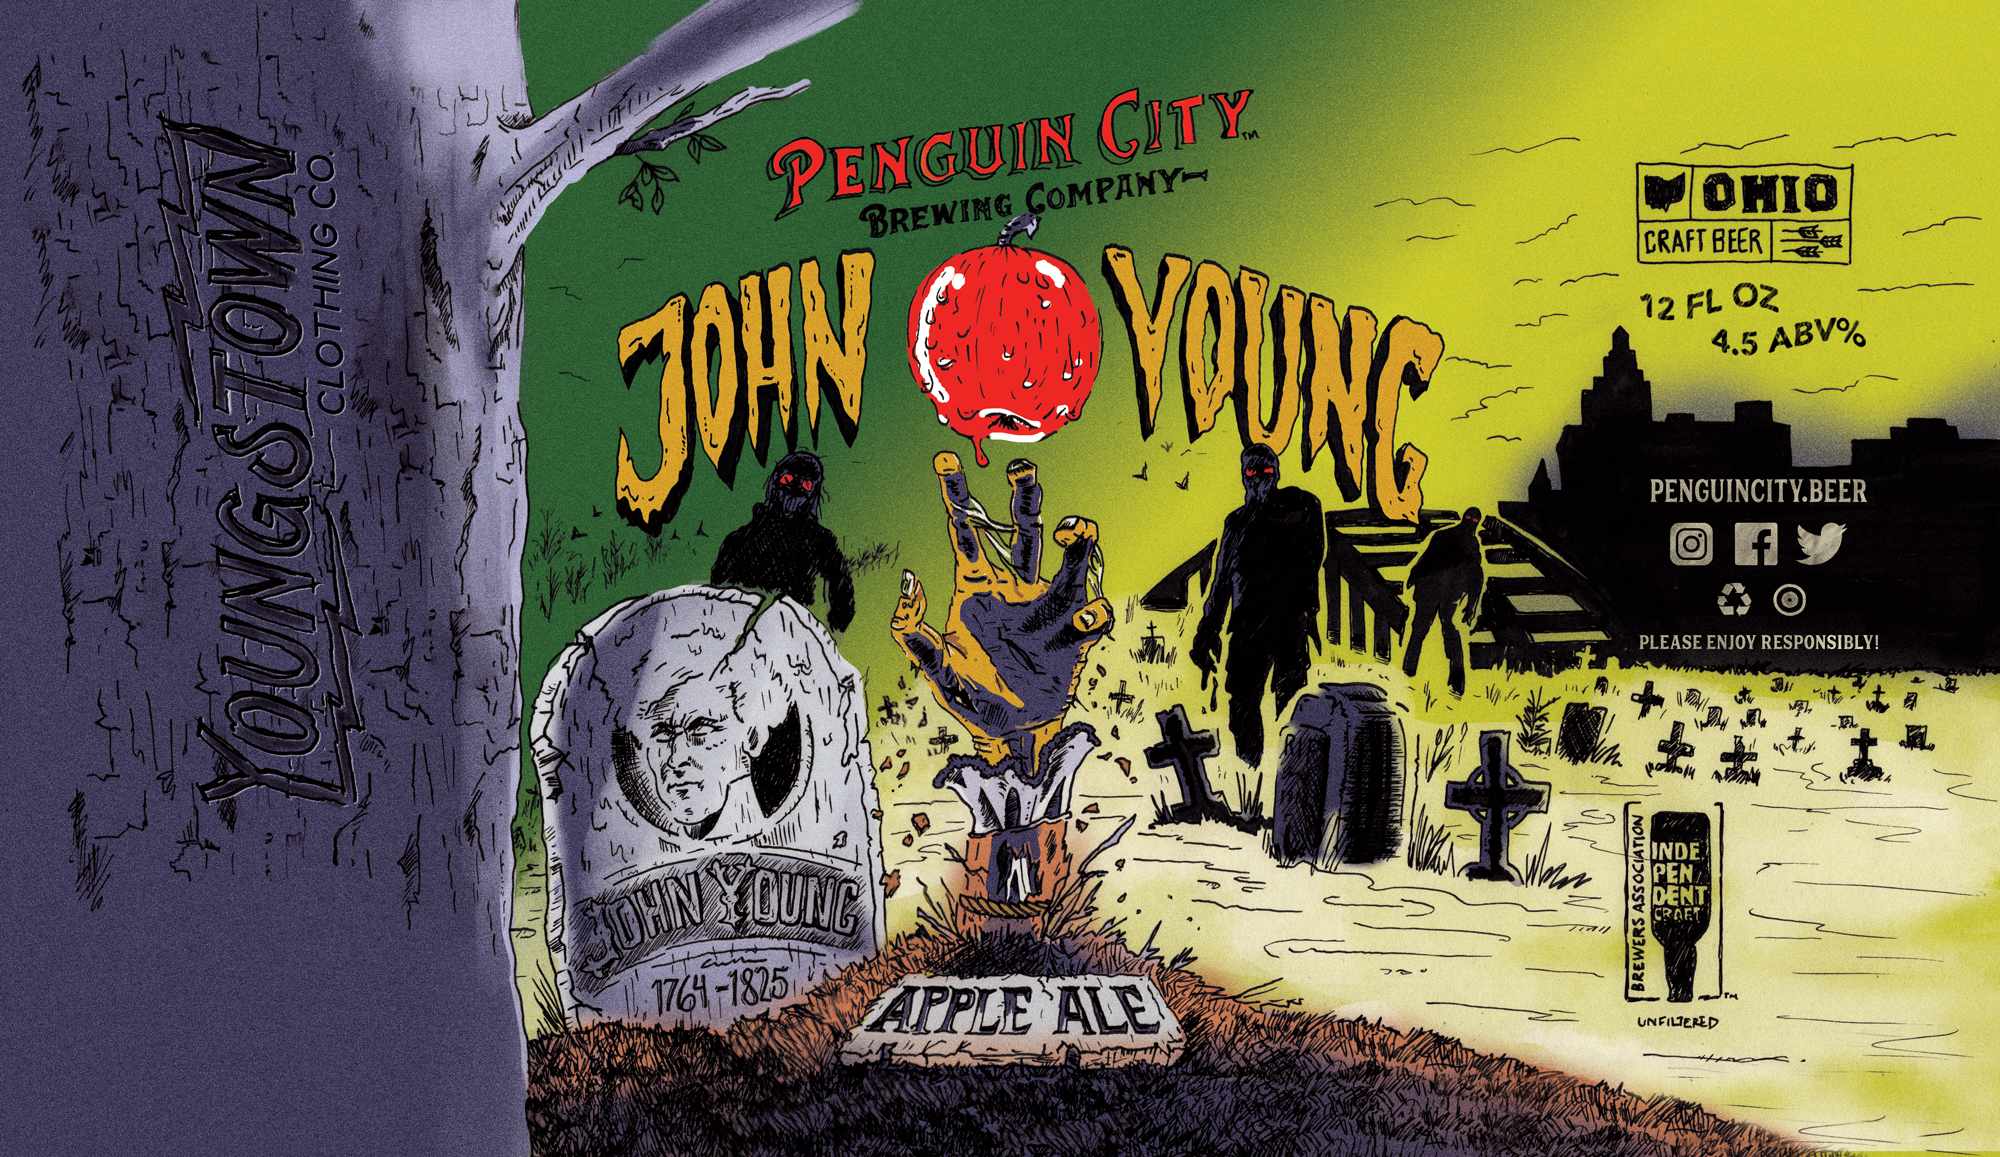 Penguin City Brewing Company and Youngstown Clothing Company have collaborated on a special beer for Youngstown's Zombie Crawl.